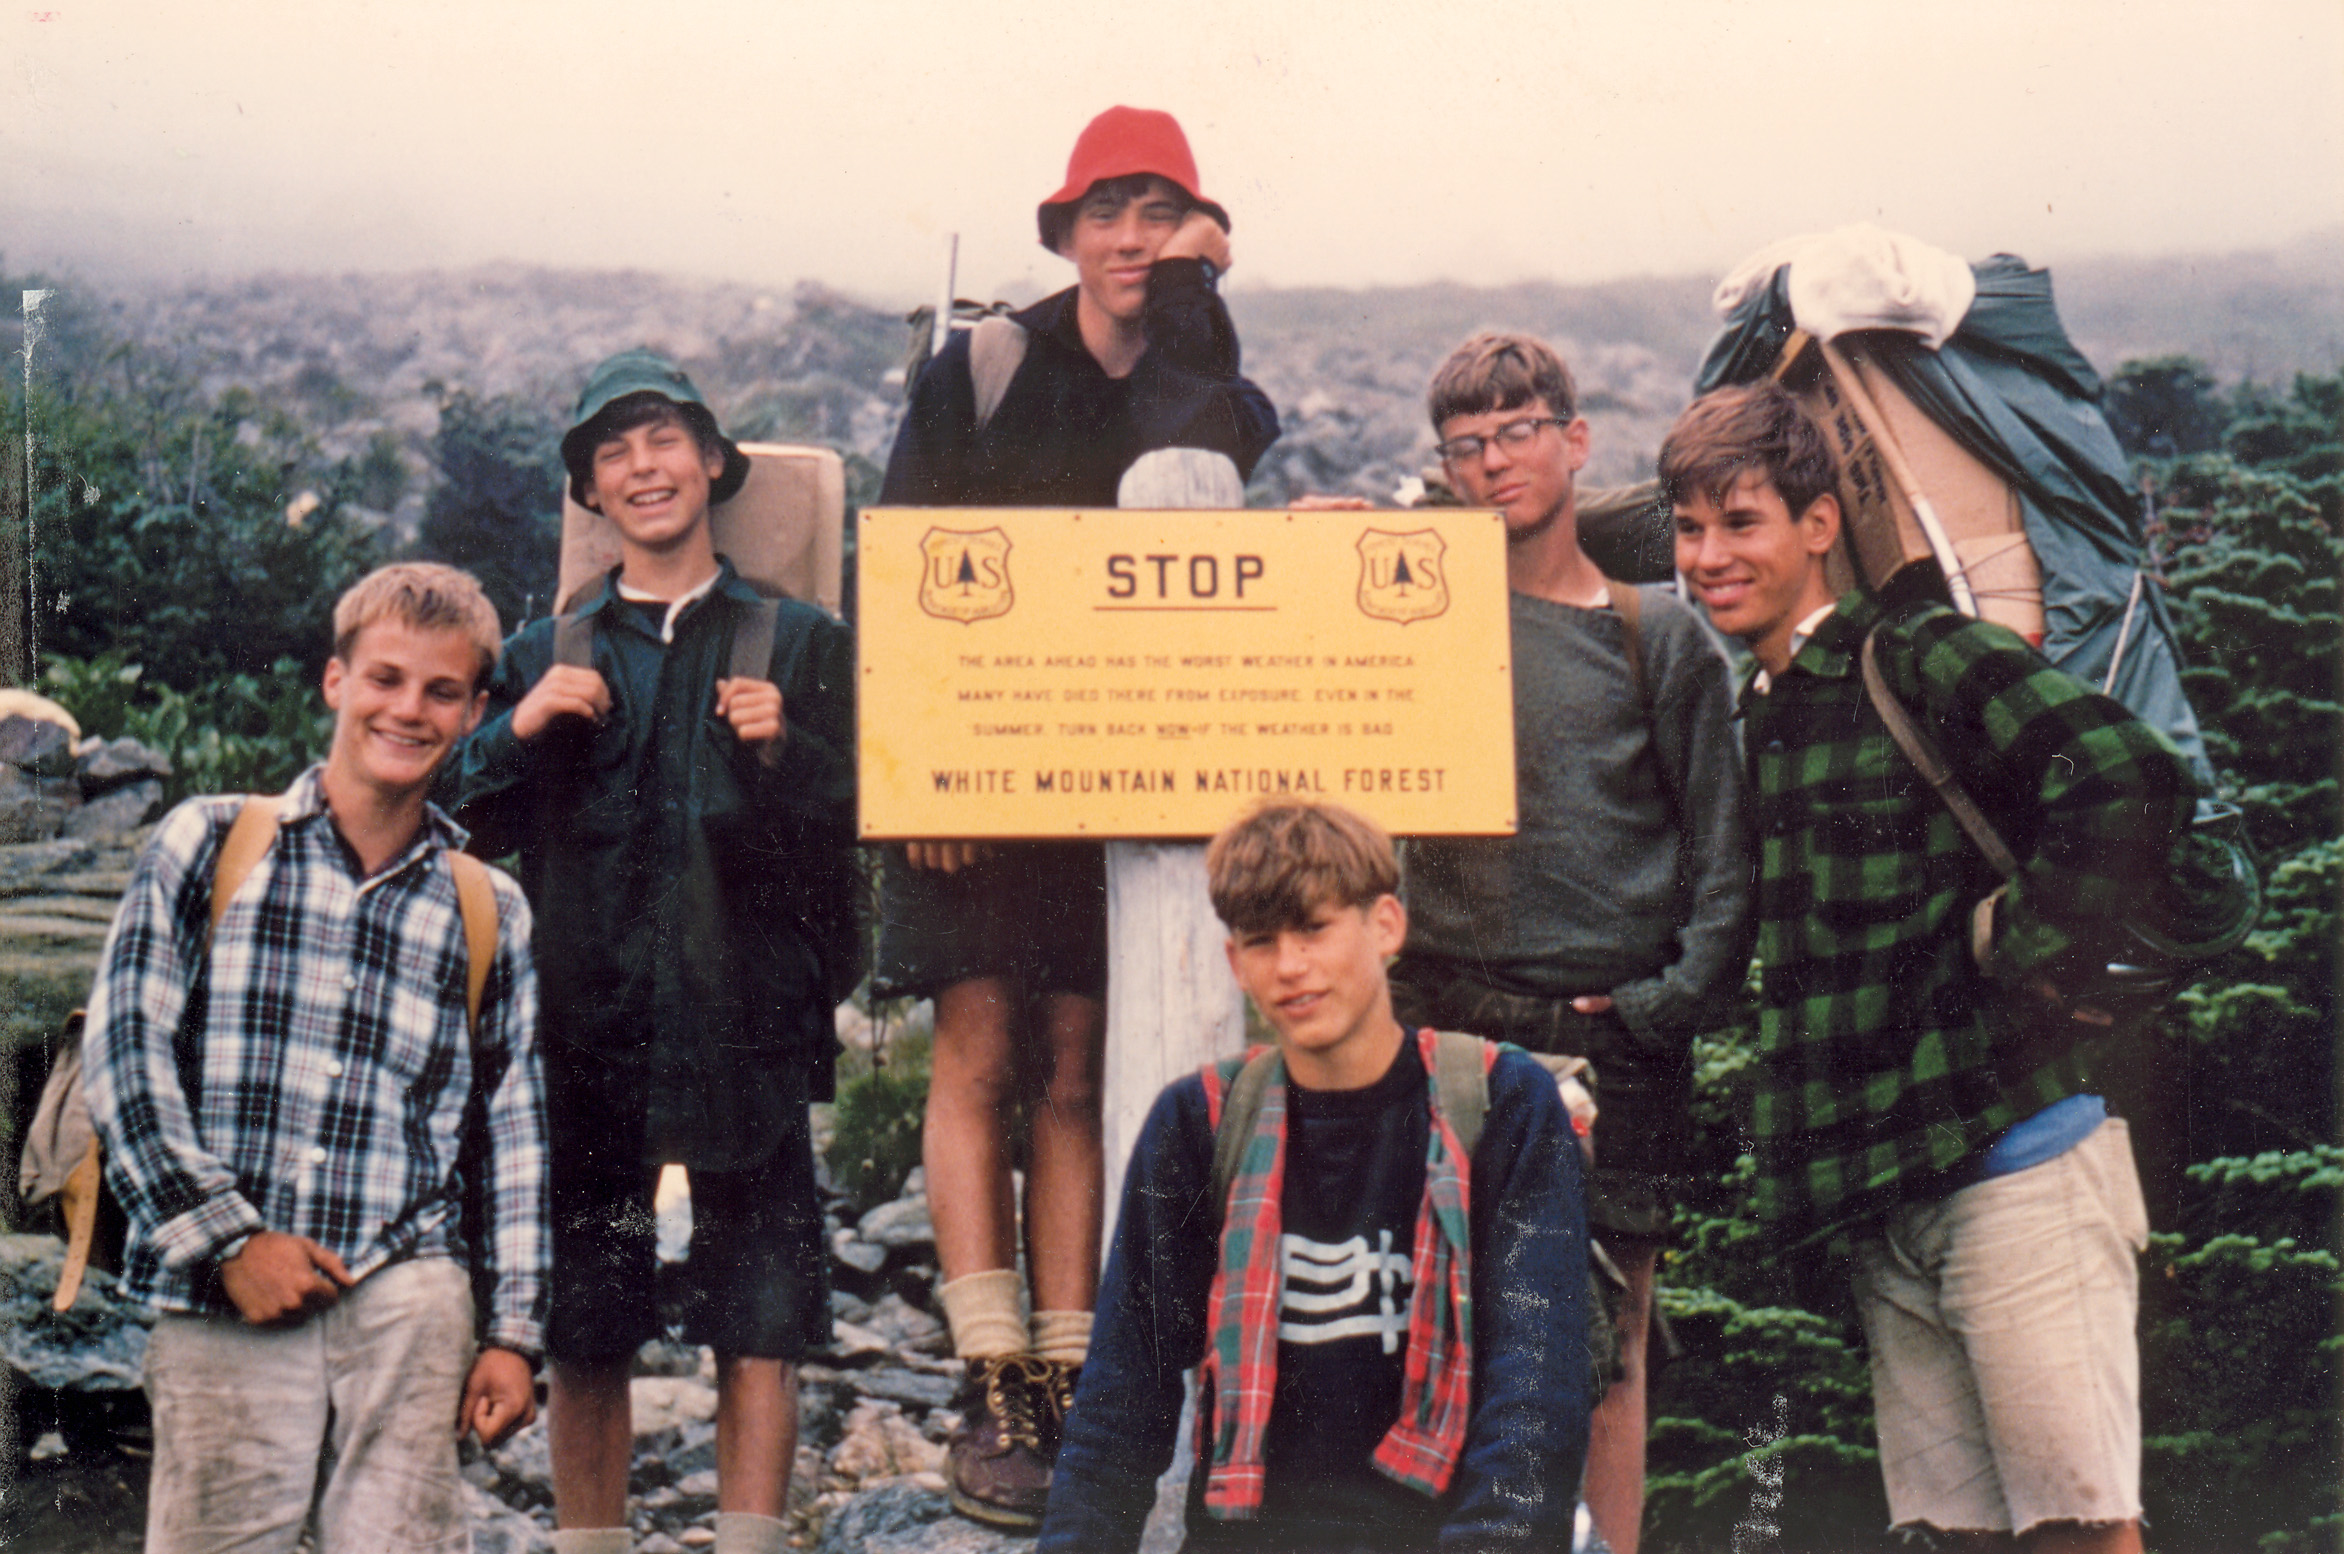 From left to right: Howard Ferguson, Coly Hoyt, John Timkin, John Goodhue, Jeff Kilbreth, and Dave Carmen on their way up Mt. Washington.